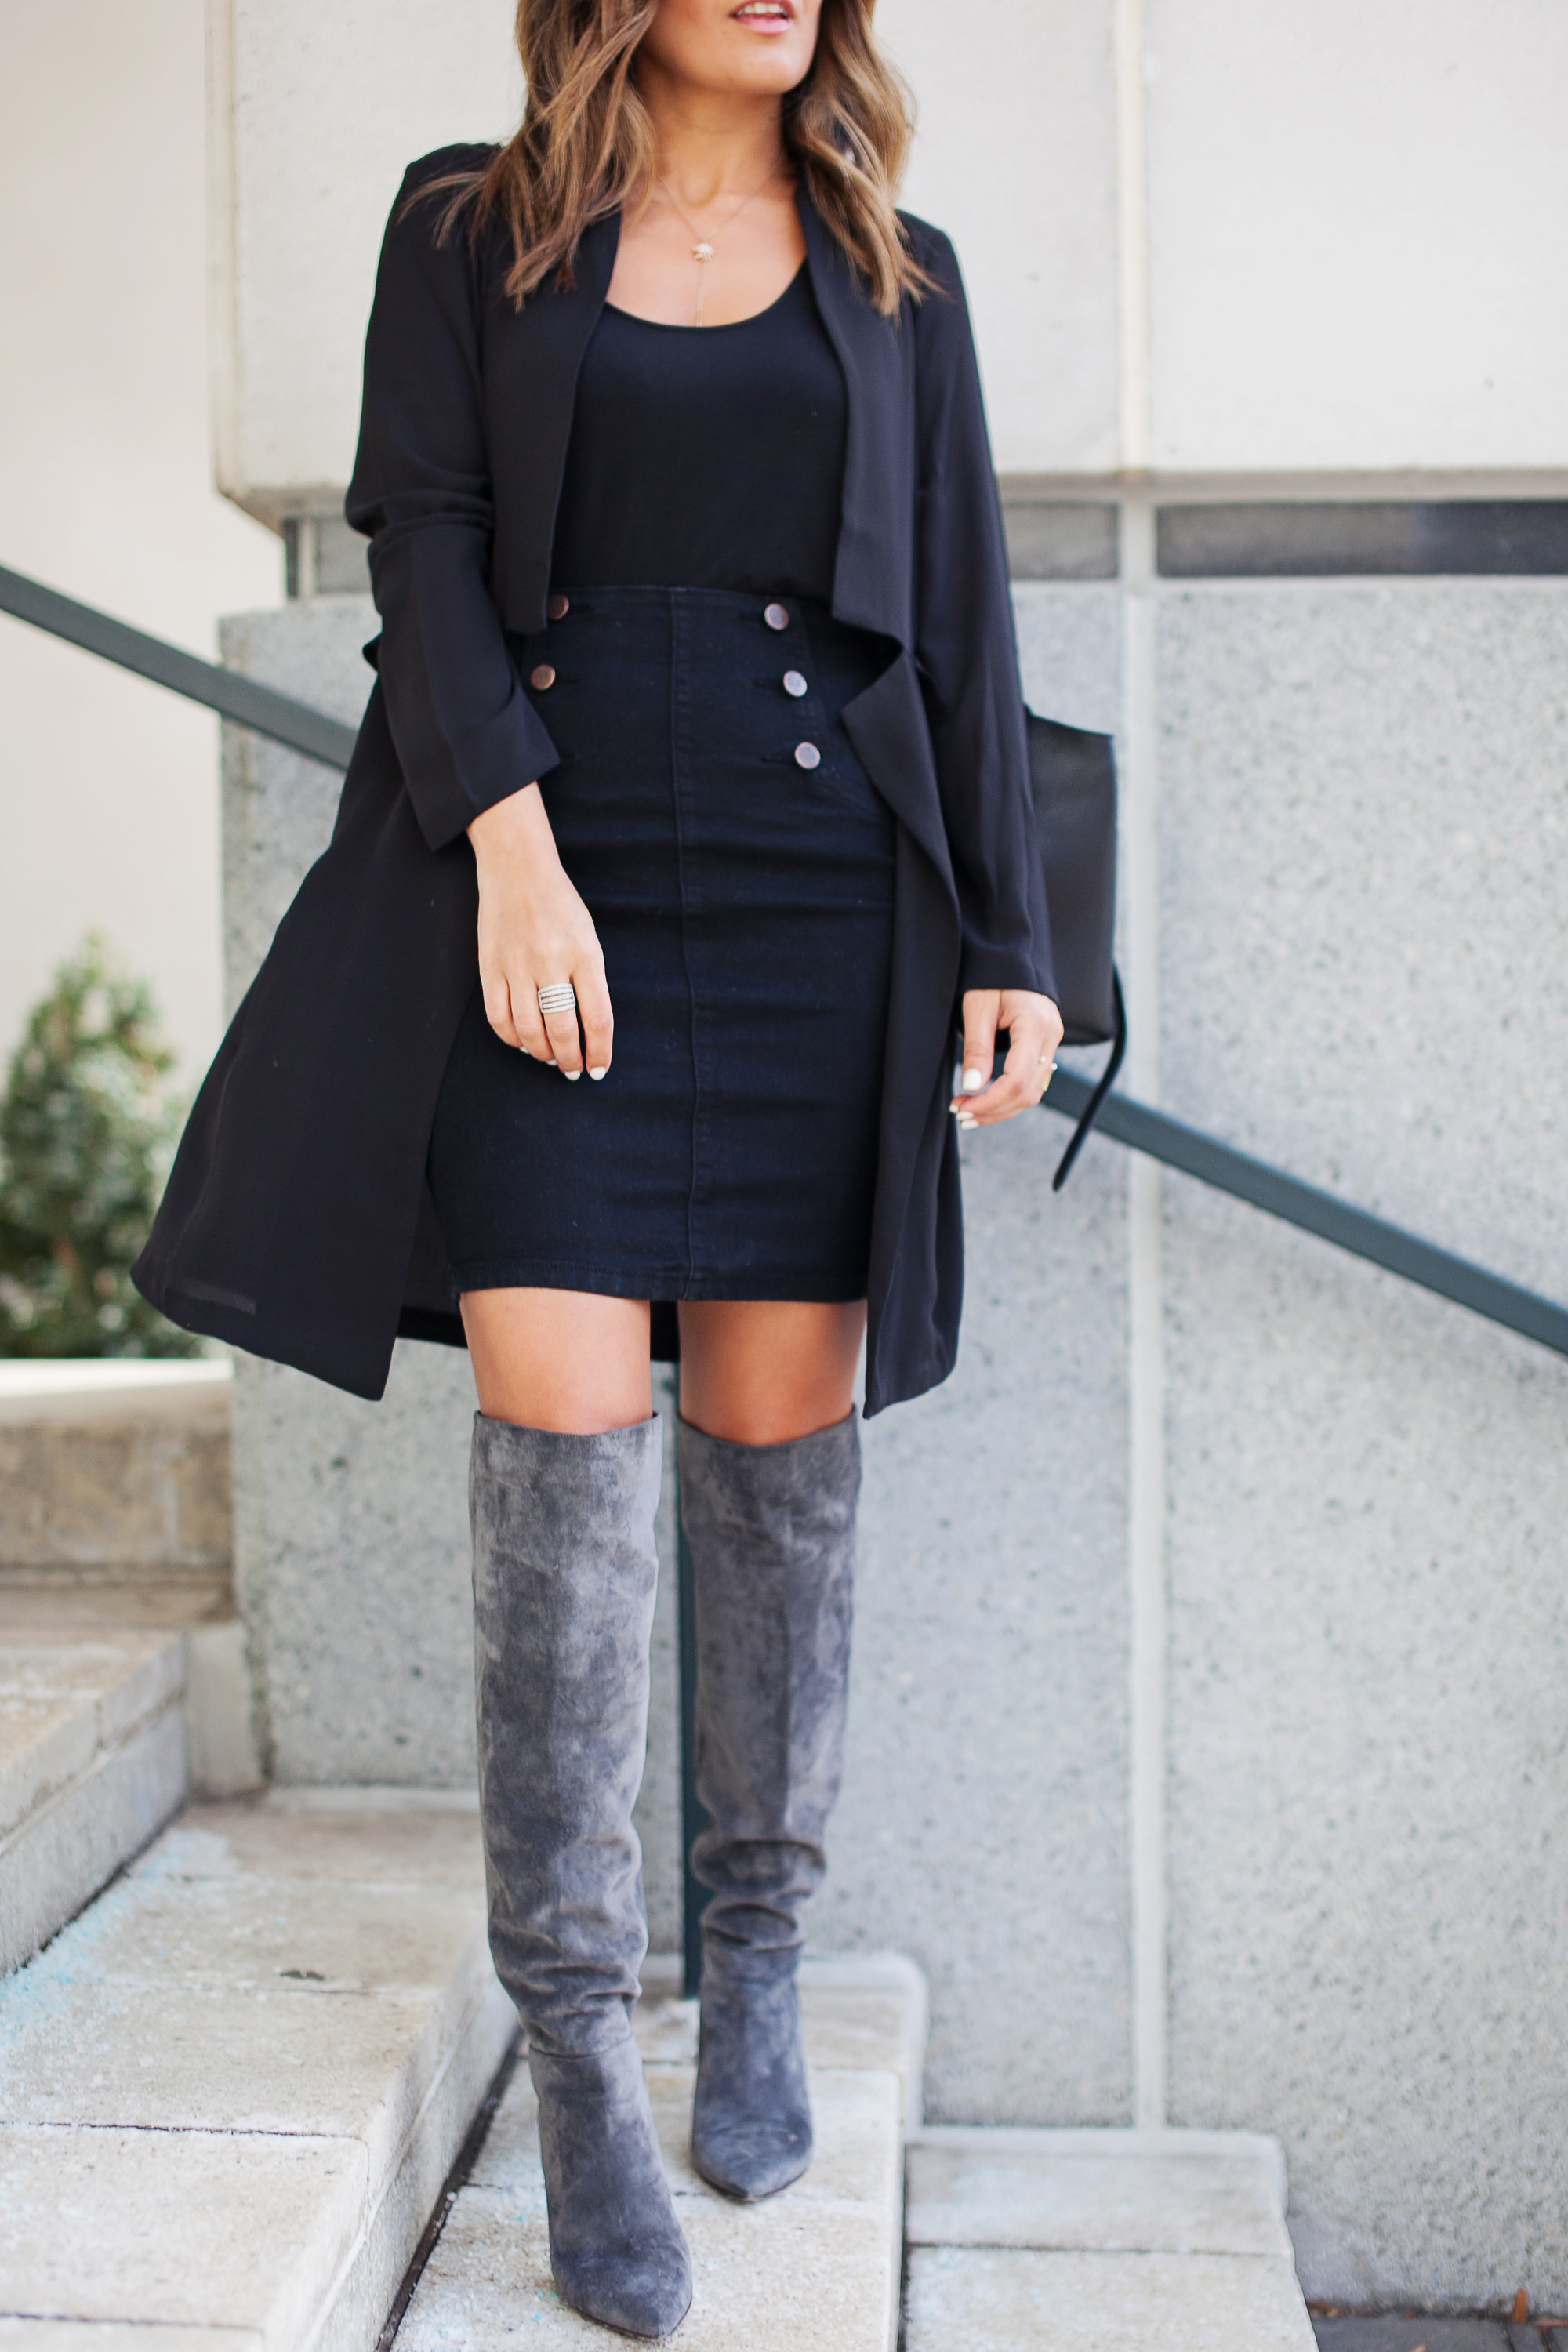 Forever 21 denim skirt with gold buttons